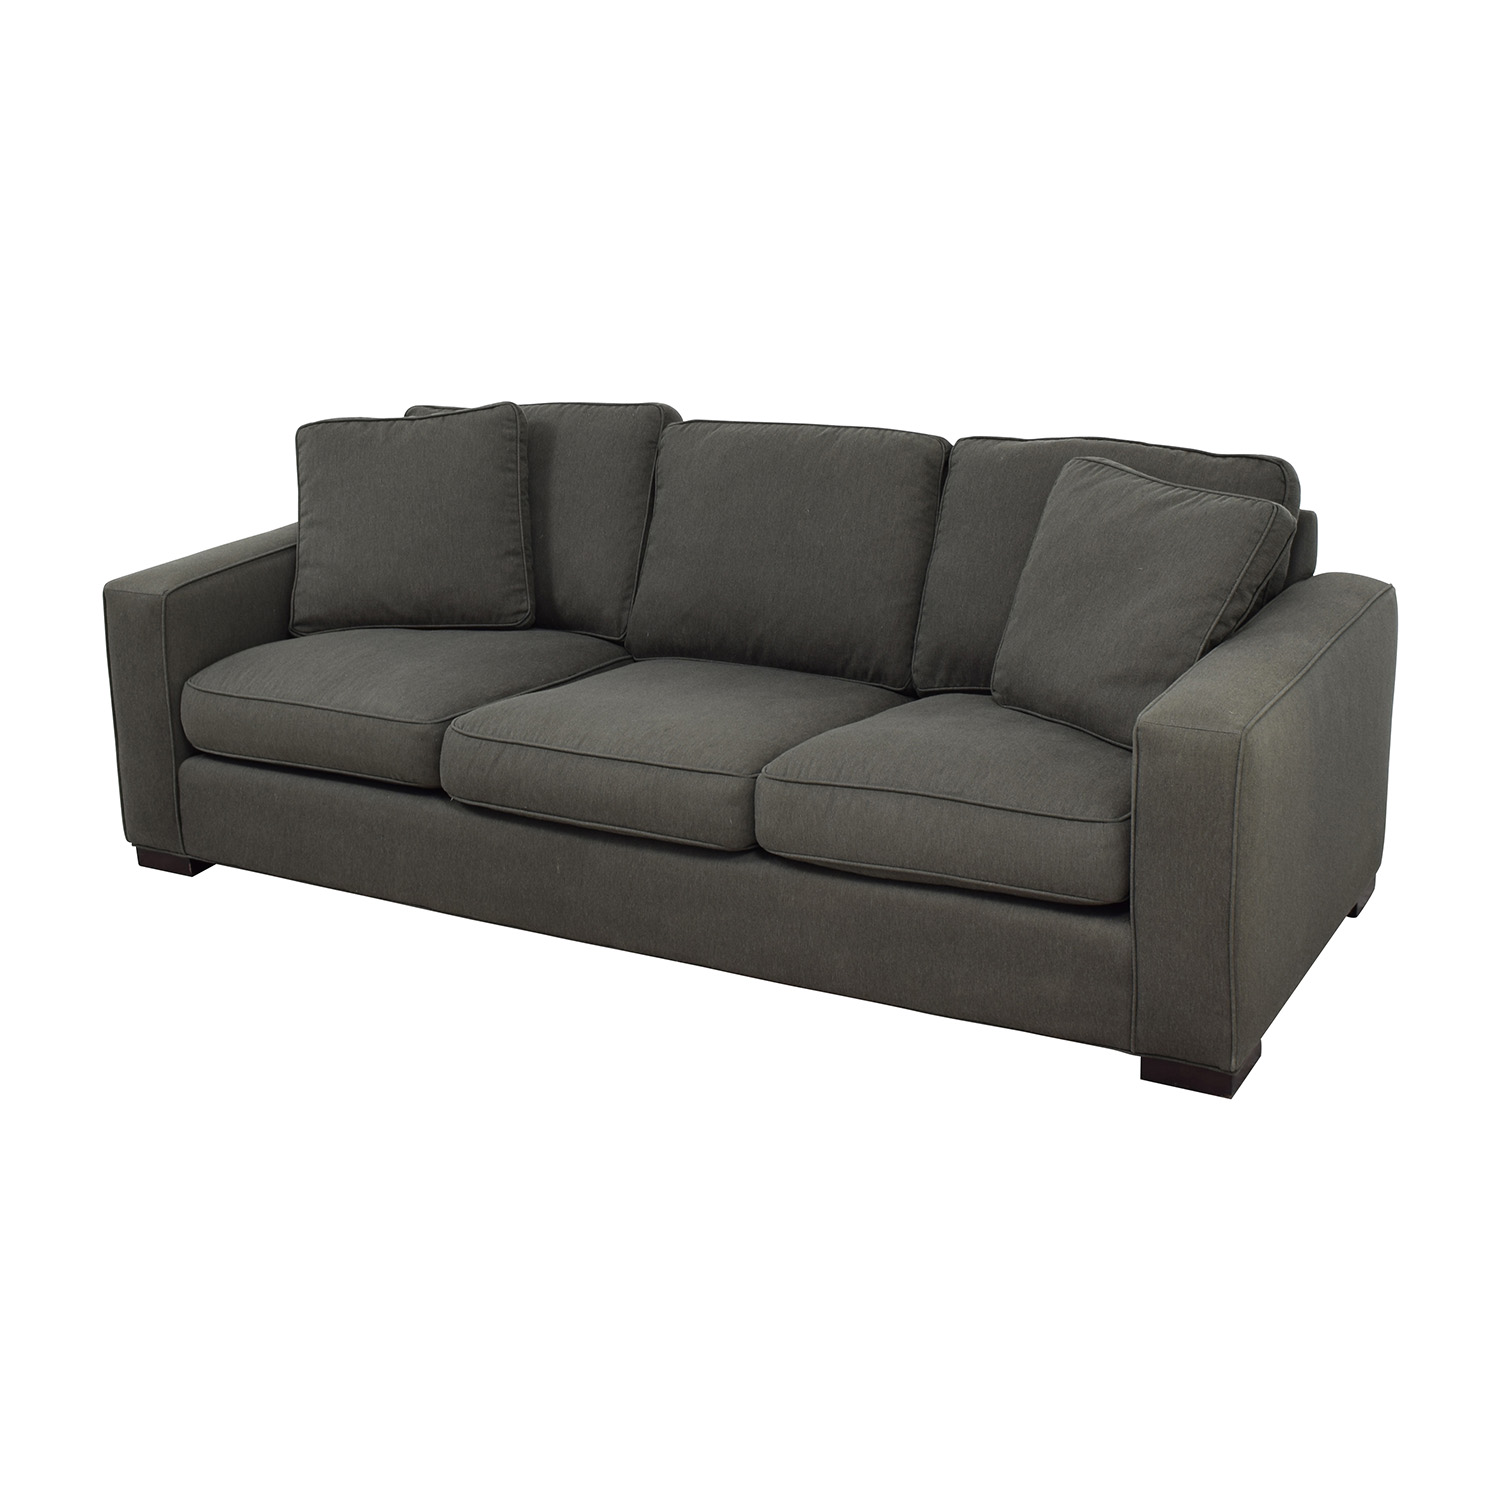 Room & Board Room & Board Metro Sofa In Charcoal